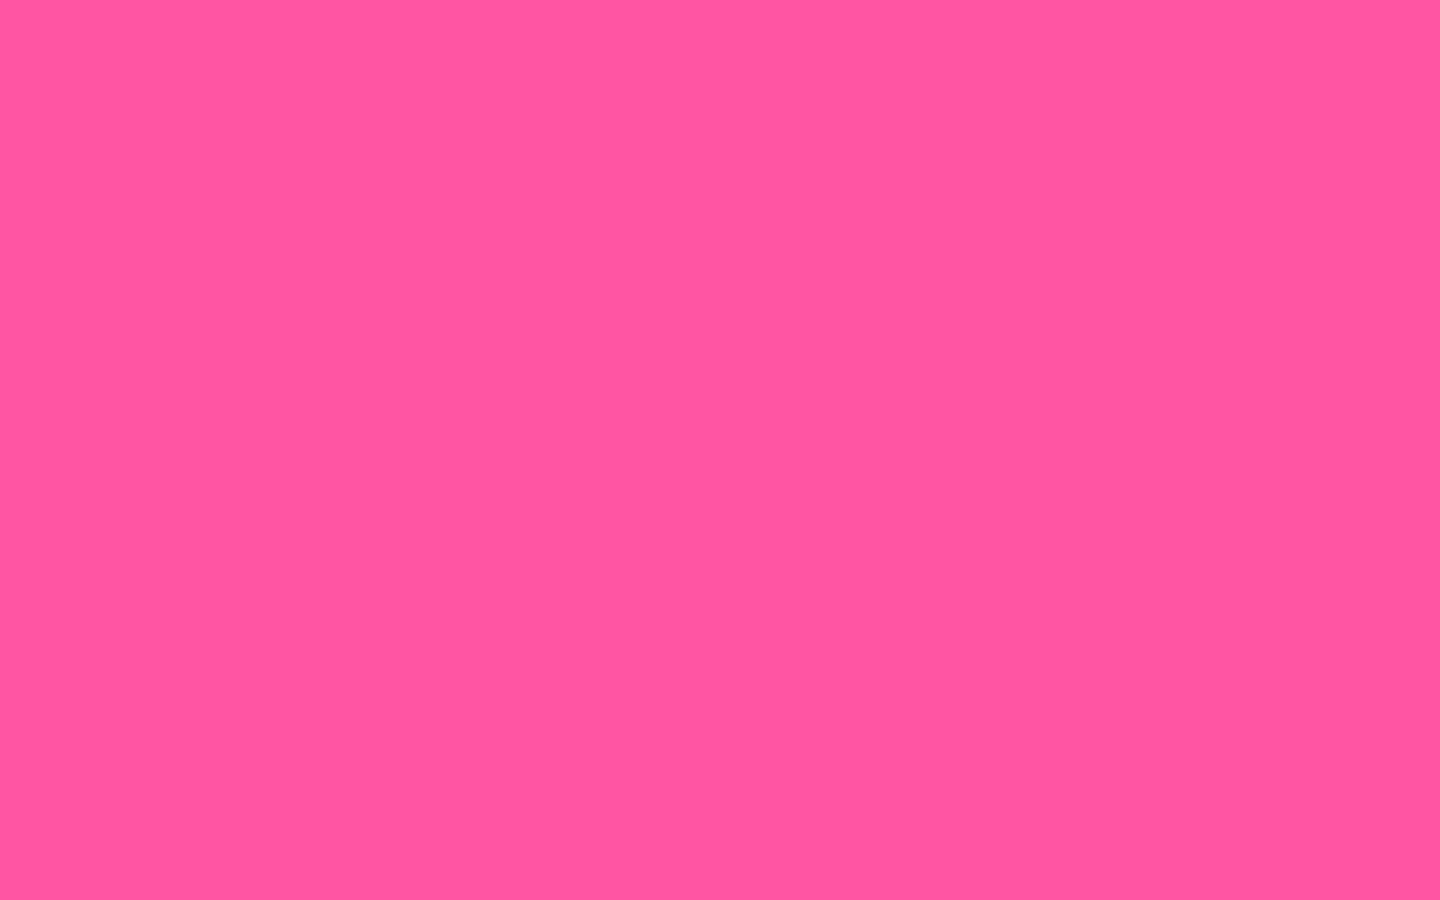 1440x900 Magenta Crayola Solid Color Background